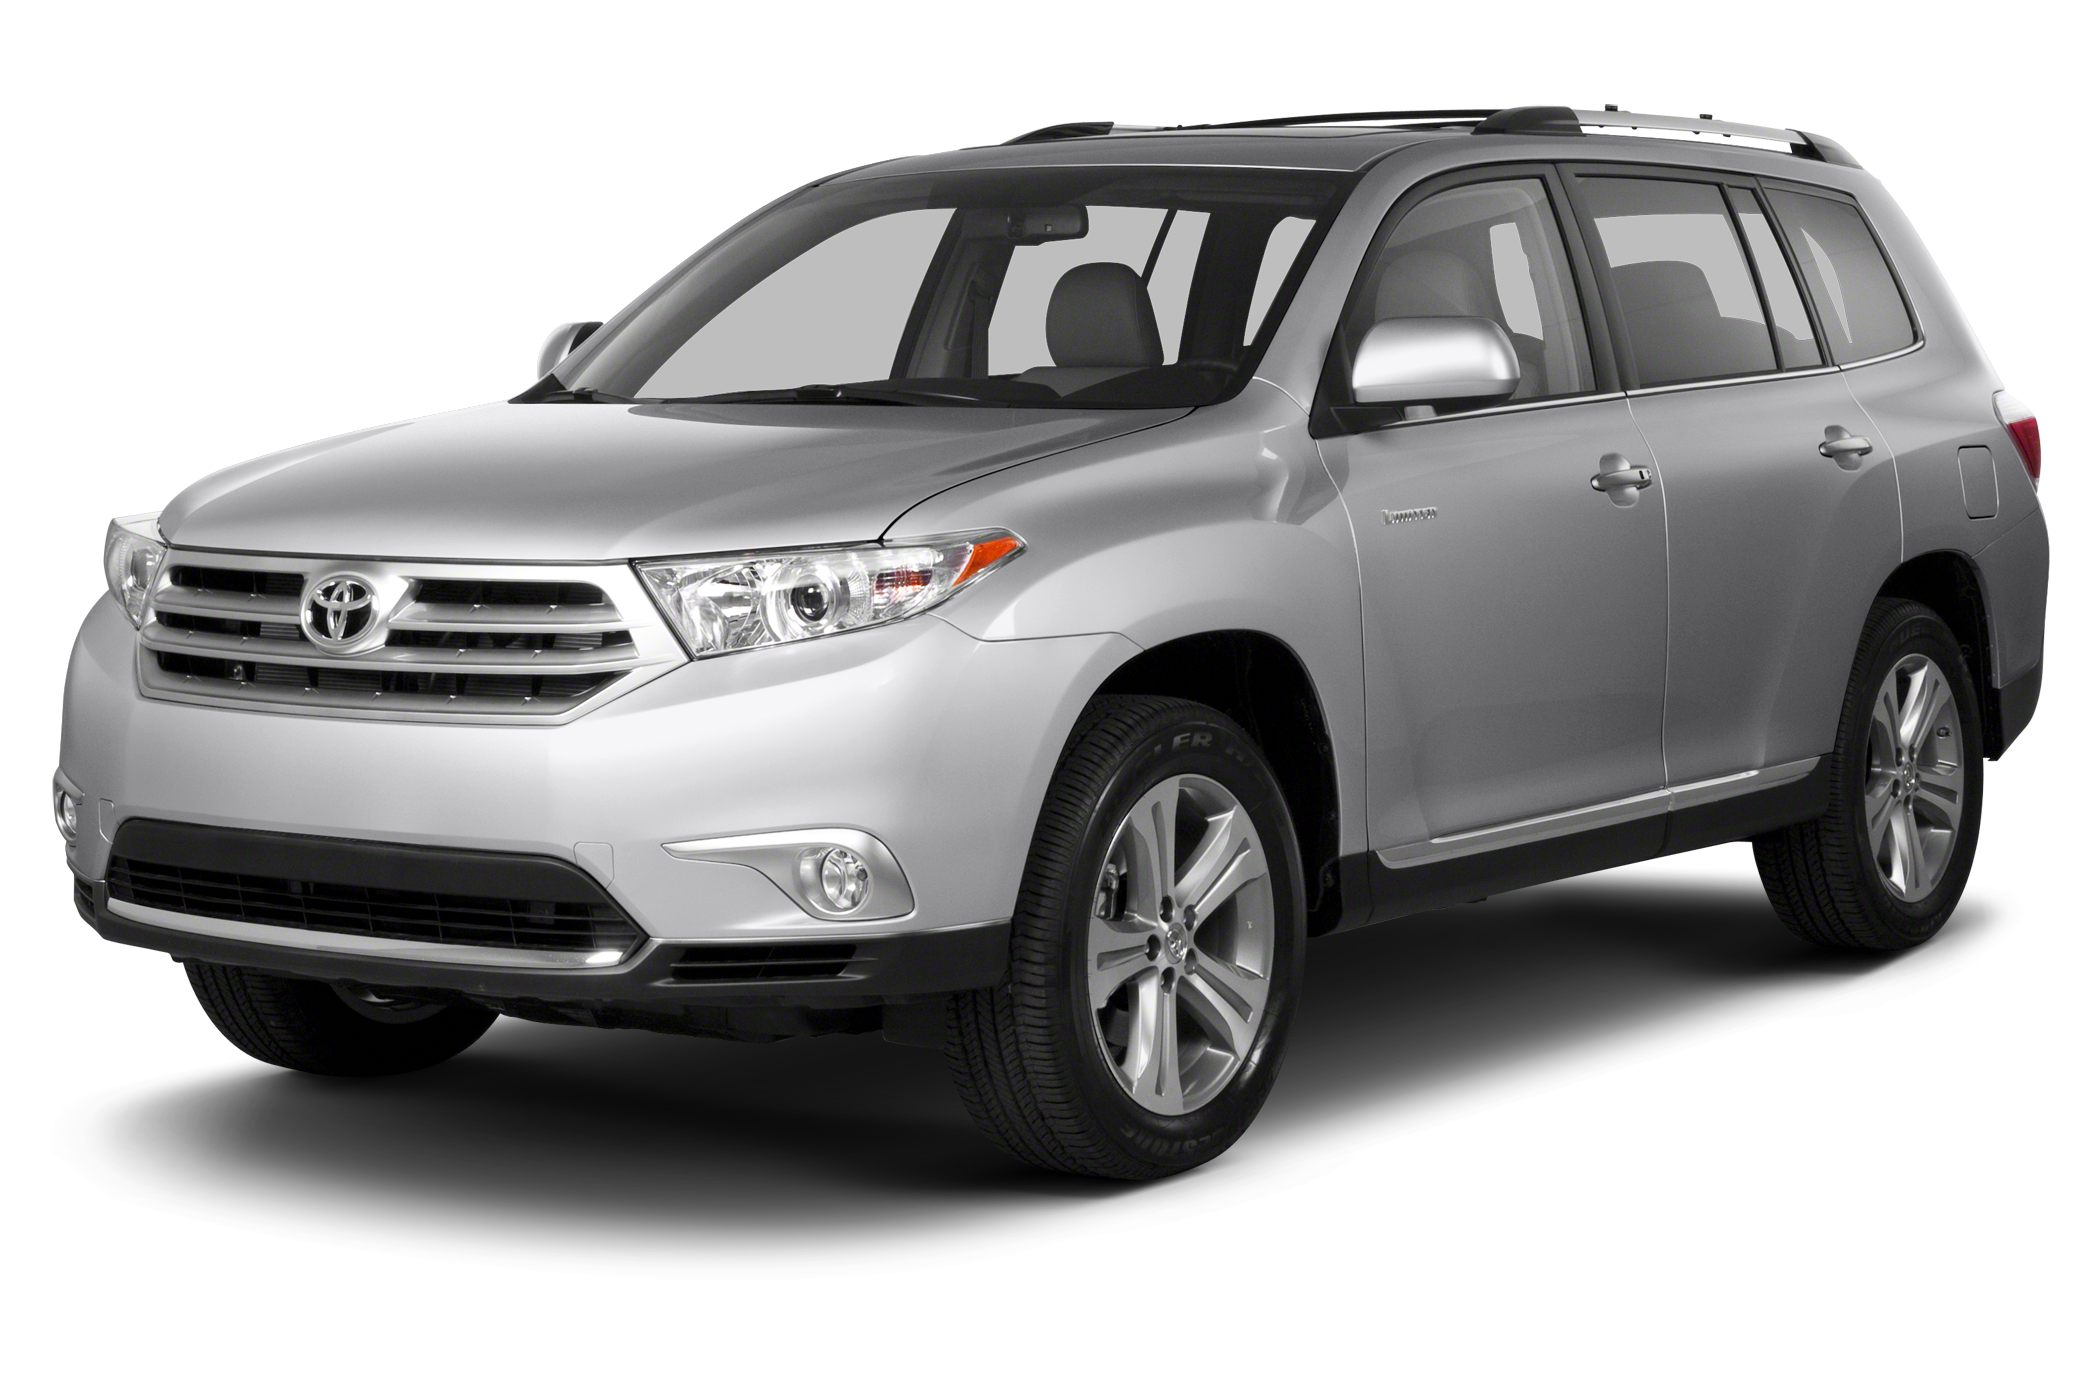 2013 Toyota Highlander Base Plus SUV for sale in Beckley for $35,029 with 0 miles